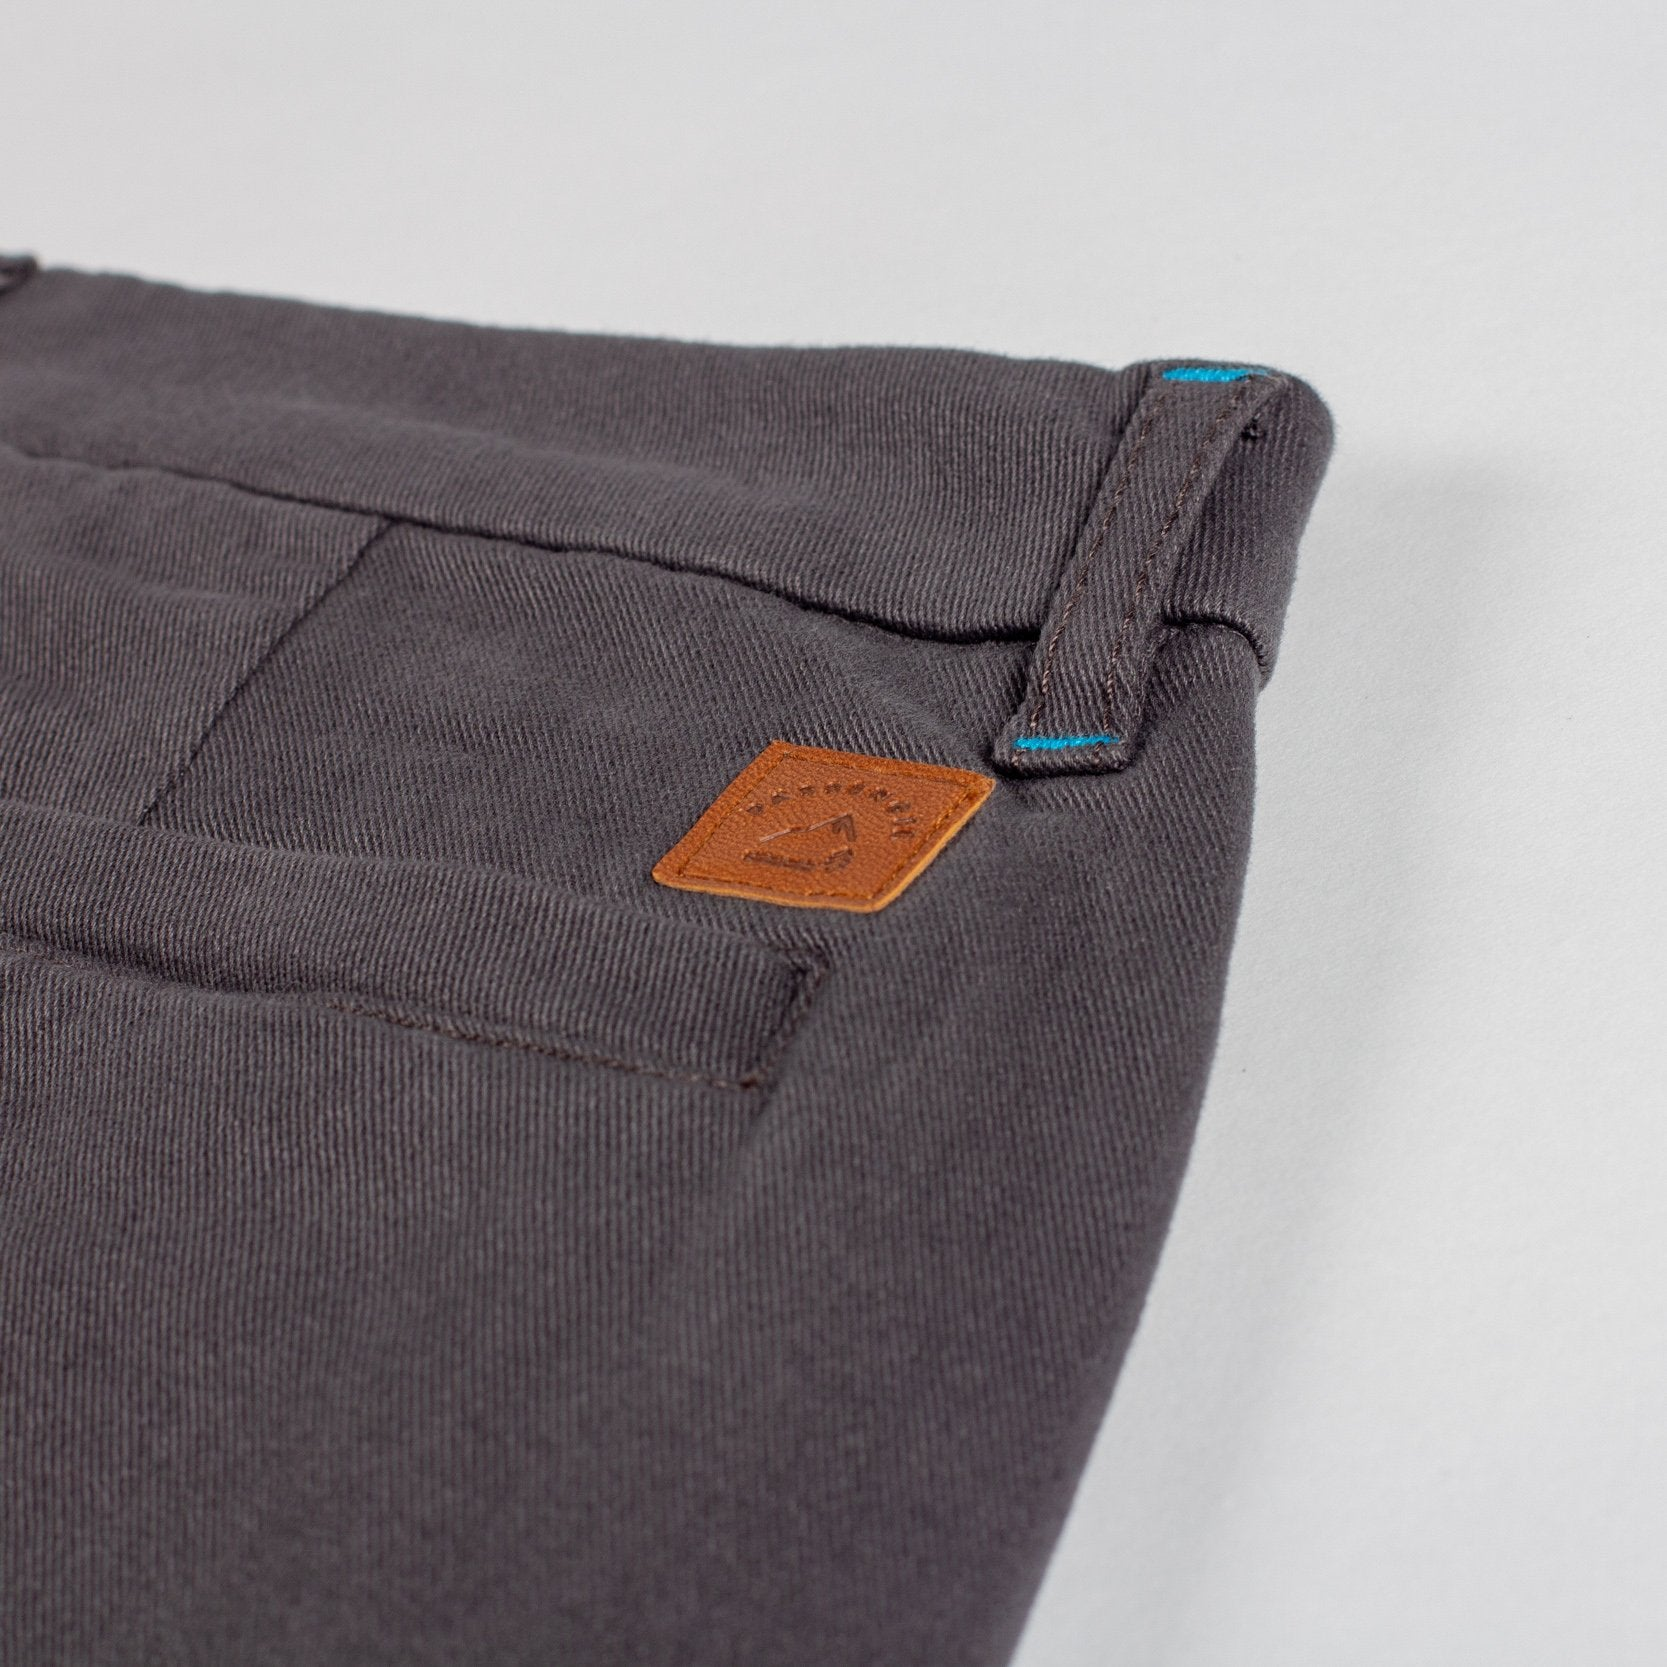 Offtrail Trousers - Grey image 7